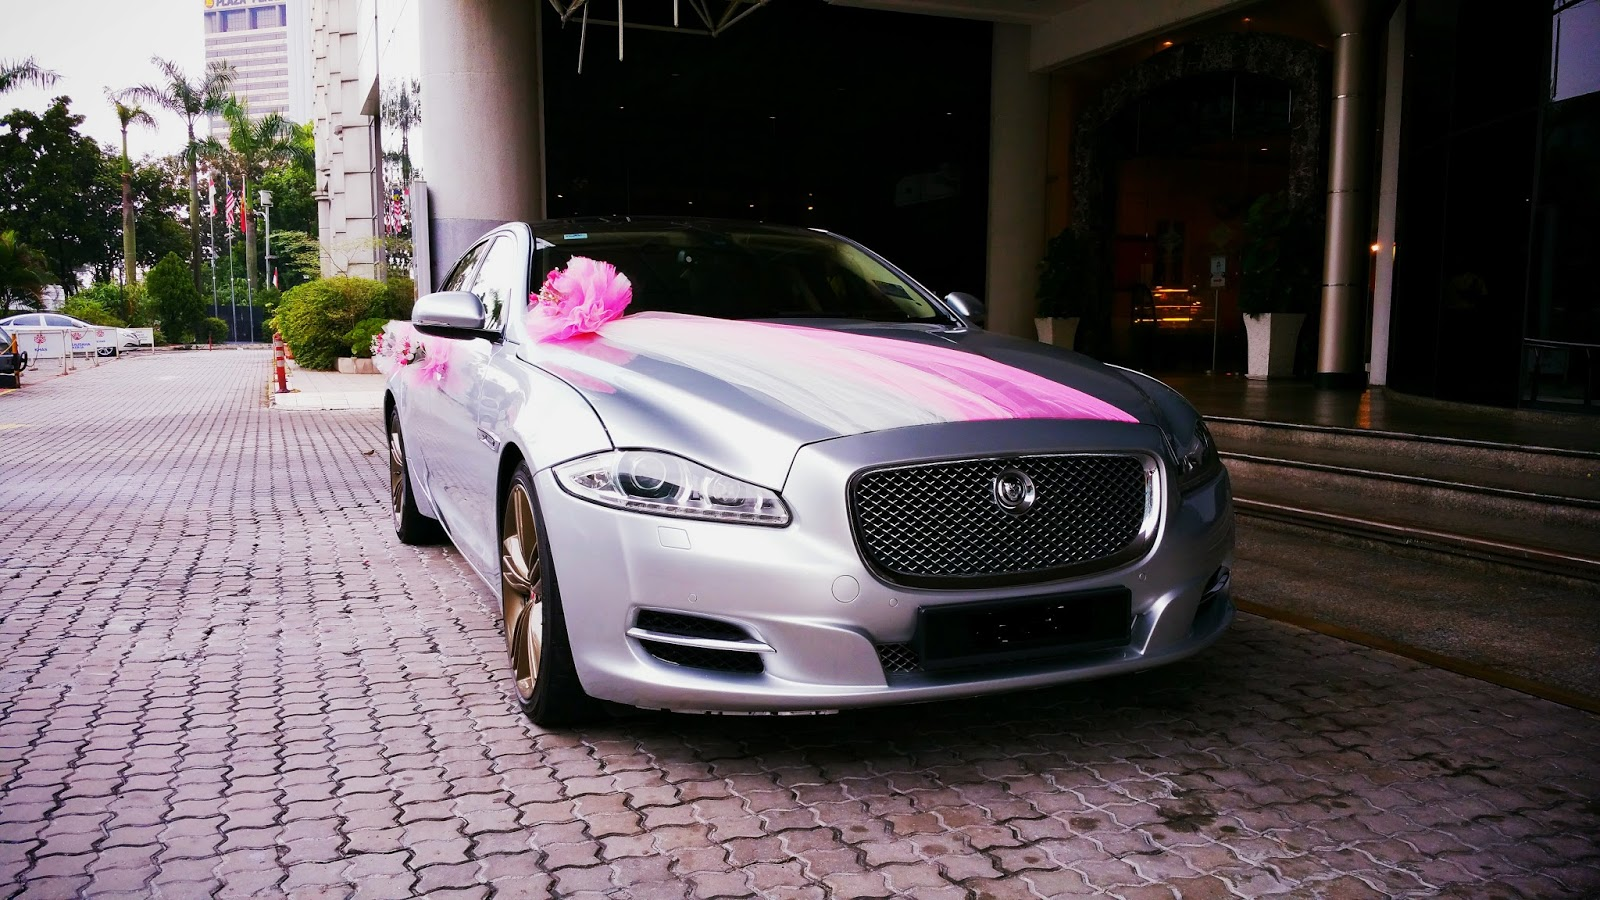 Redorca malaysia wedding and event car rental jaguar xjl wedding jaguar xjl wedding car rental with custom pink and white decorations junglespirit Gallery